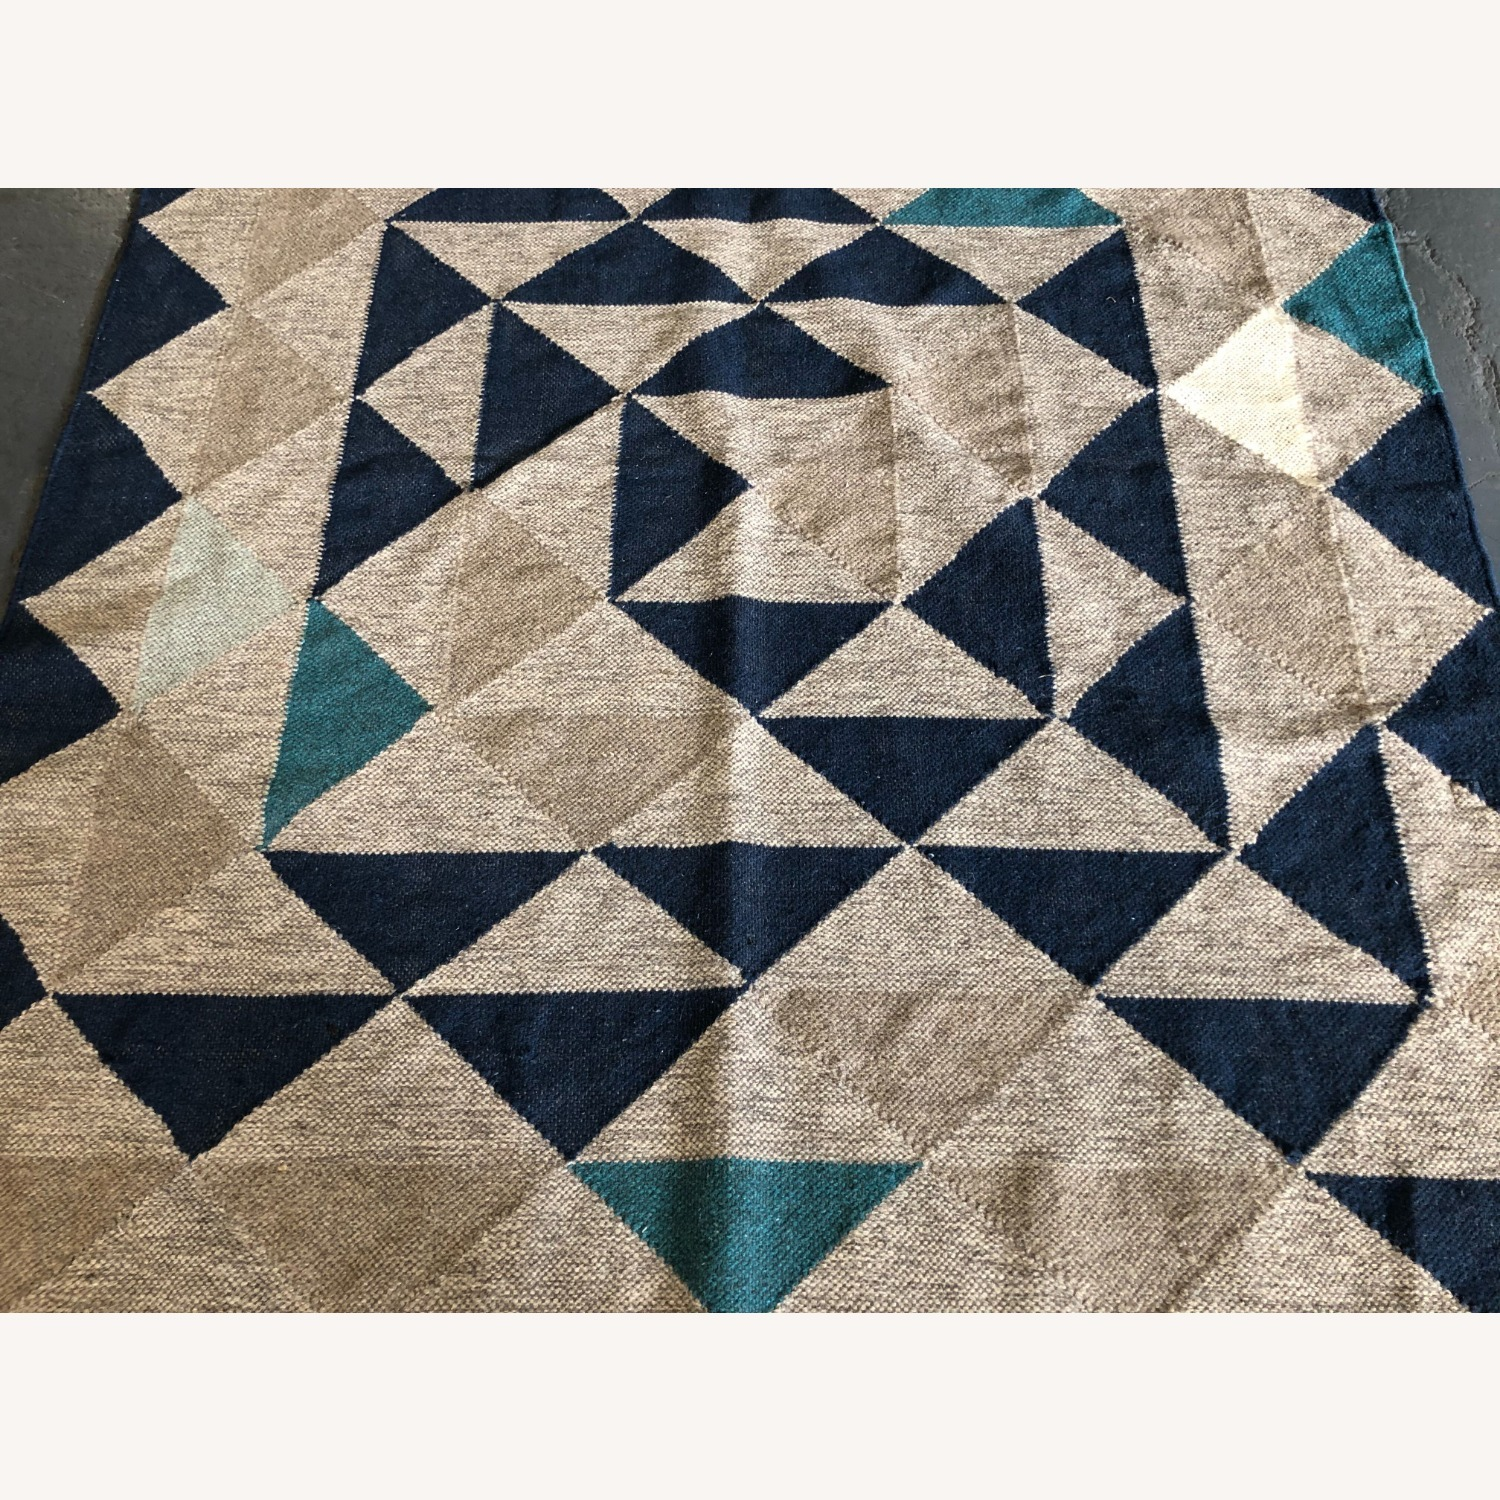 West Elm Carpet - image-2